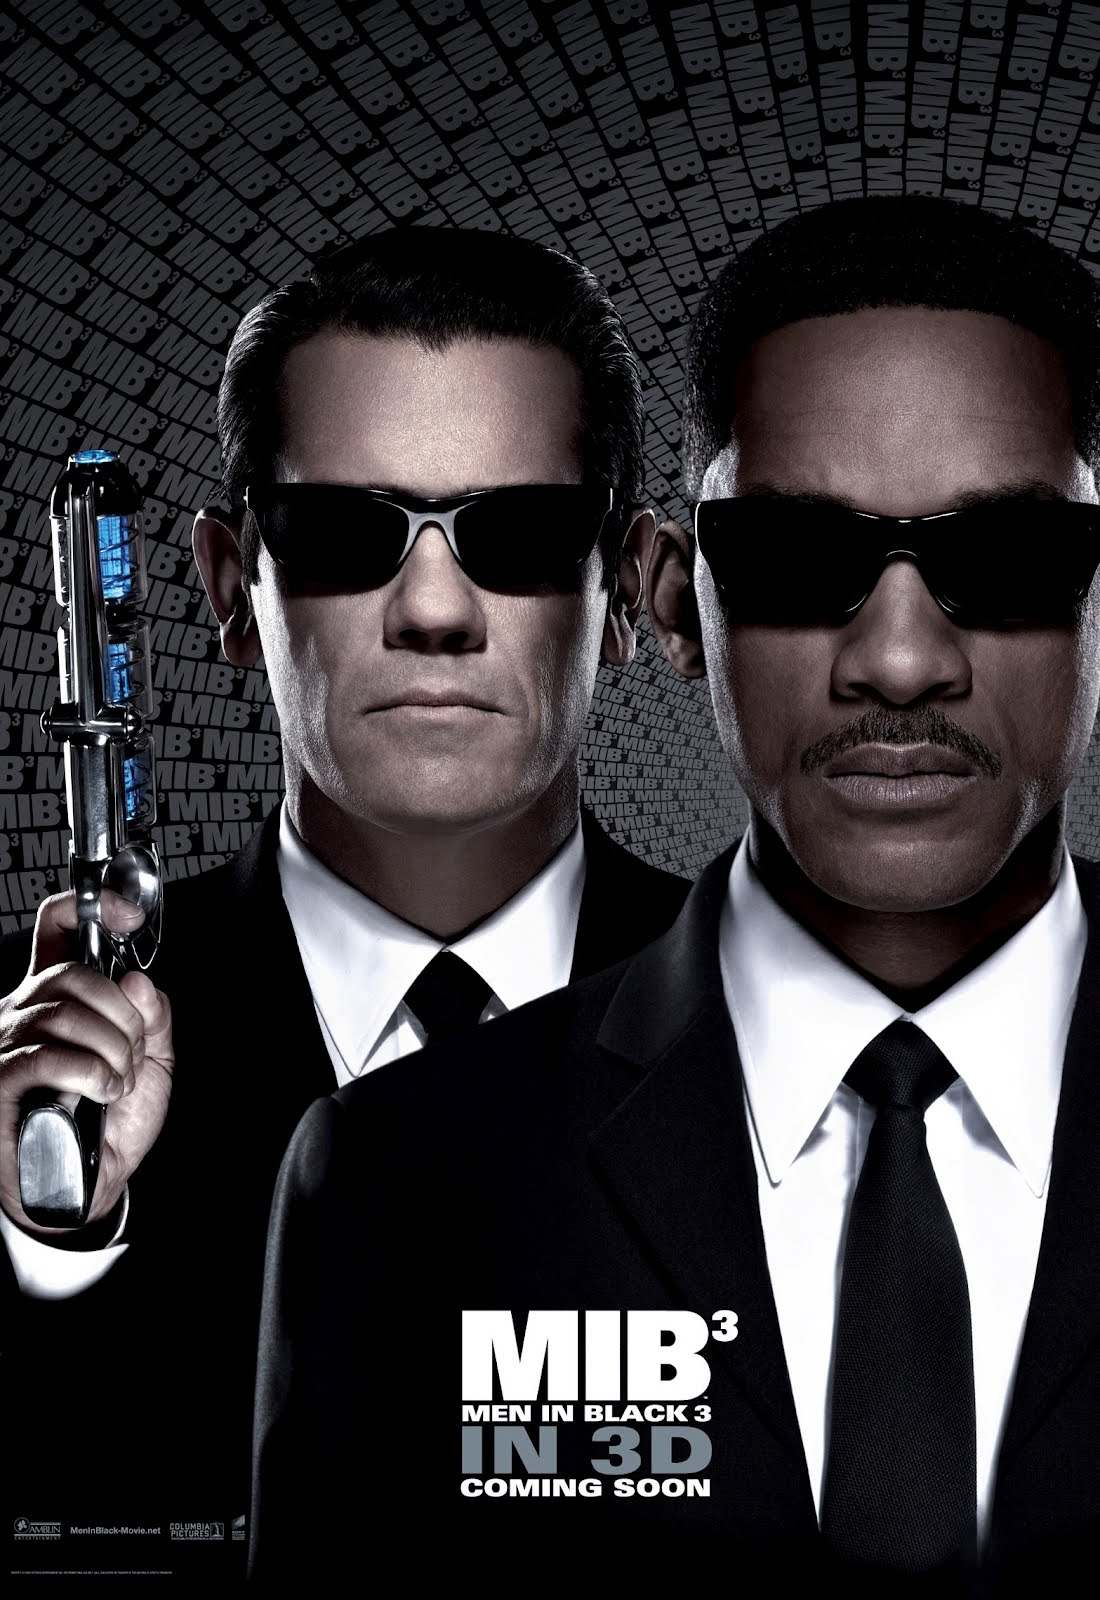 http://3.bp.blogspot.com/-iBsobd6OkIU/T1DhWilqd_I/AAAAAAAAC-k/XAHzo2dR5oc/s1600/men-in-black-3-Will-Smith-Josh-Brolin.jpg